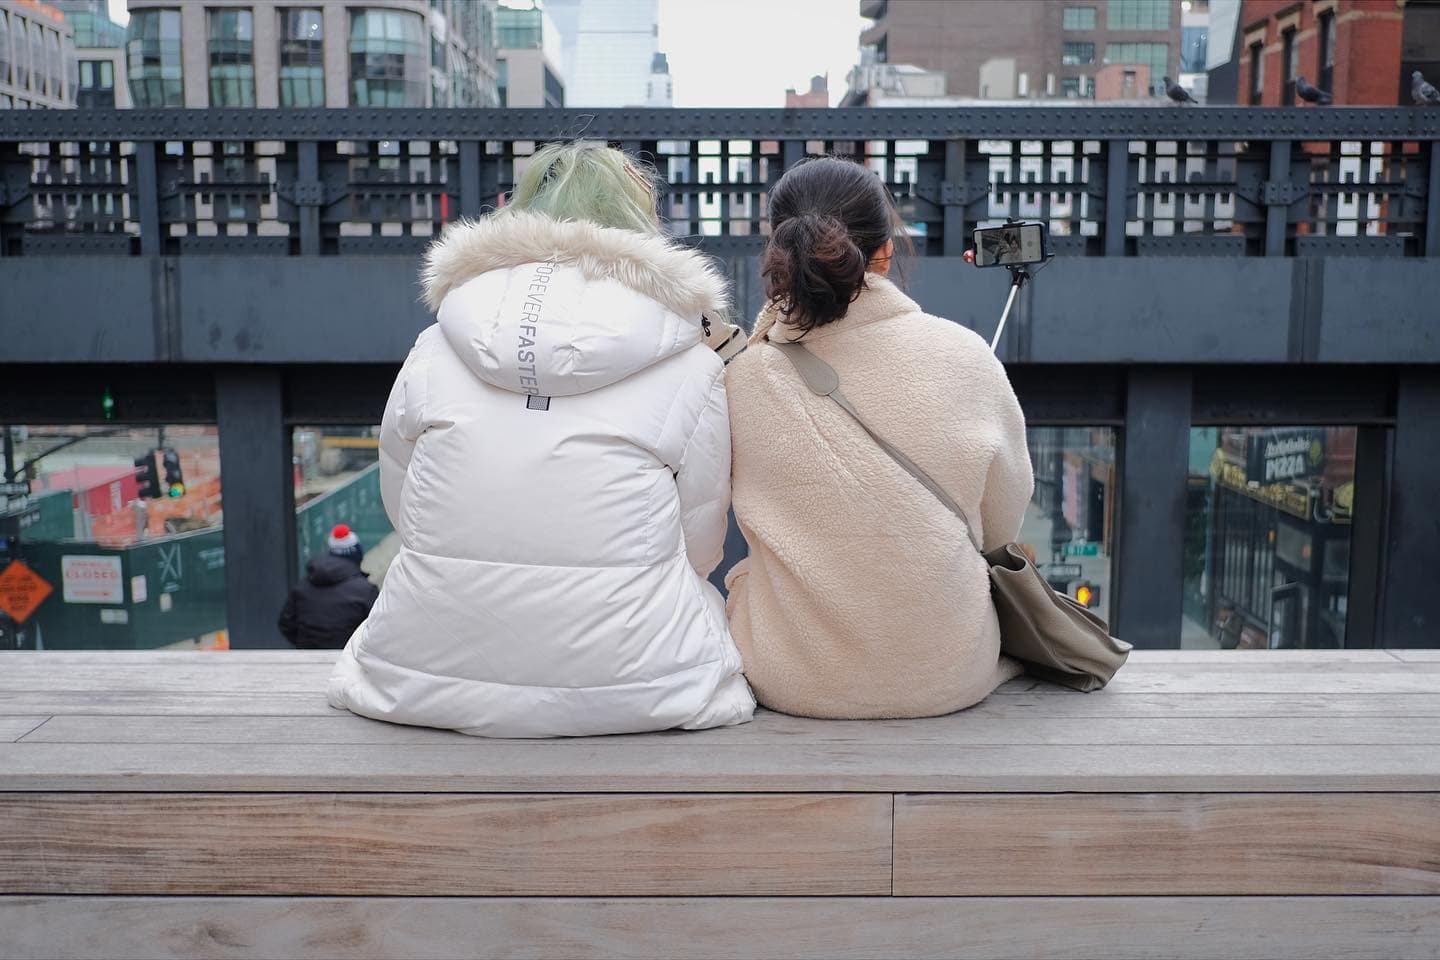 two girls sitting on step at the high line taking a selfie with phone mounted on stick